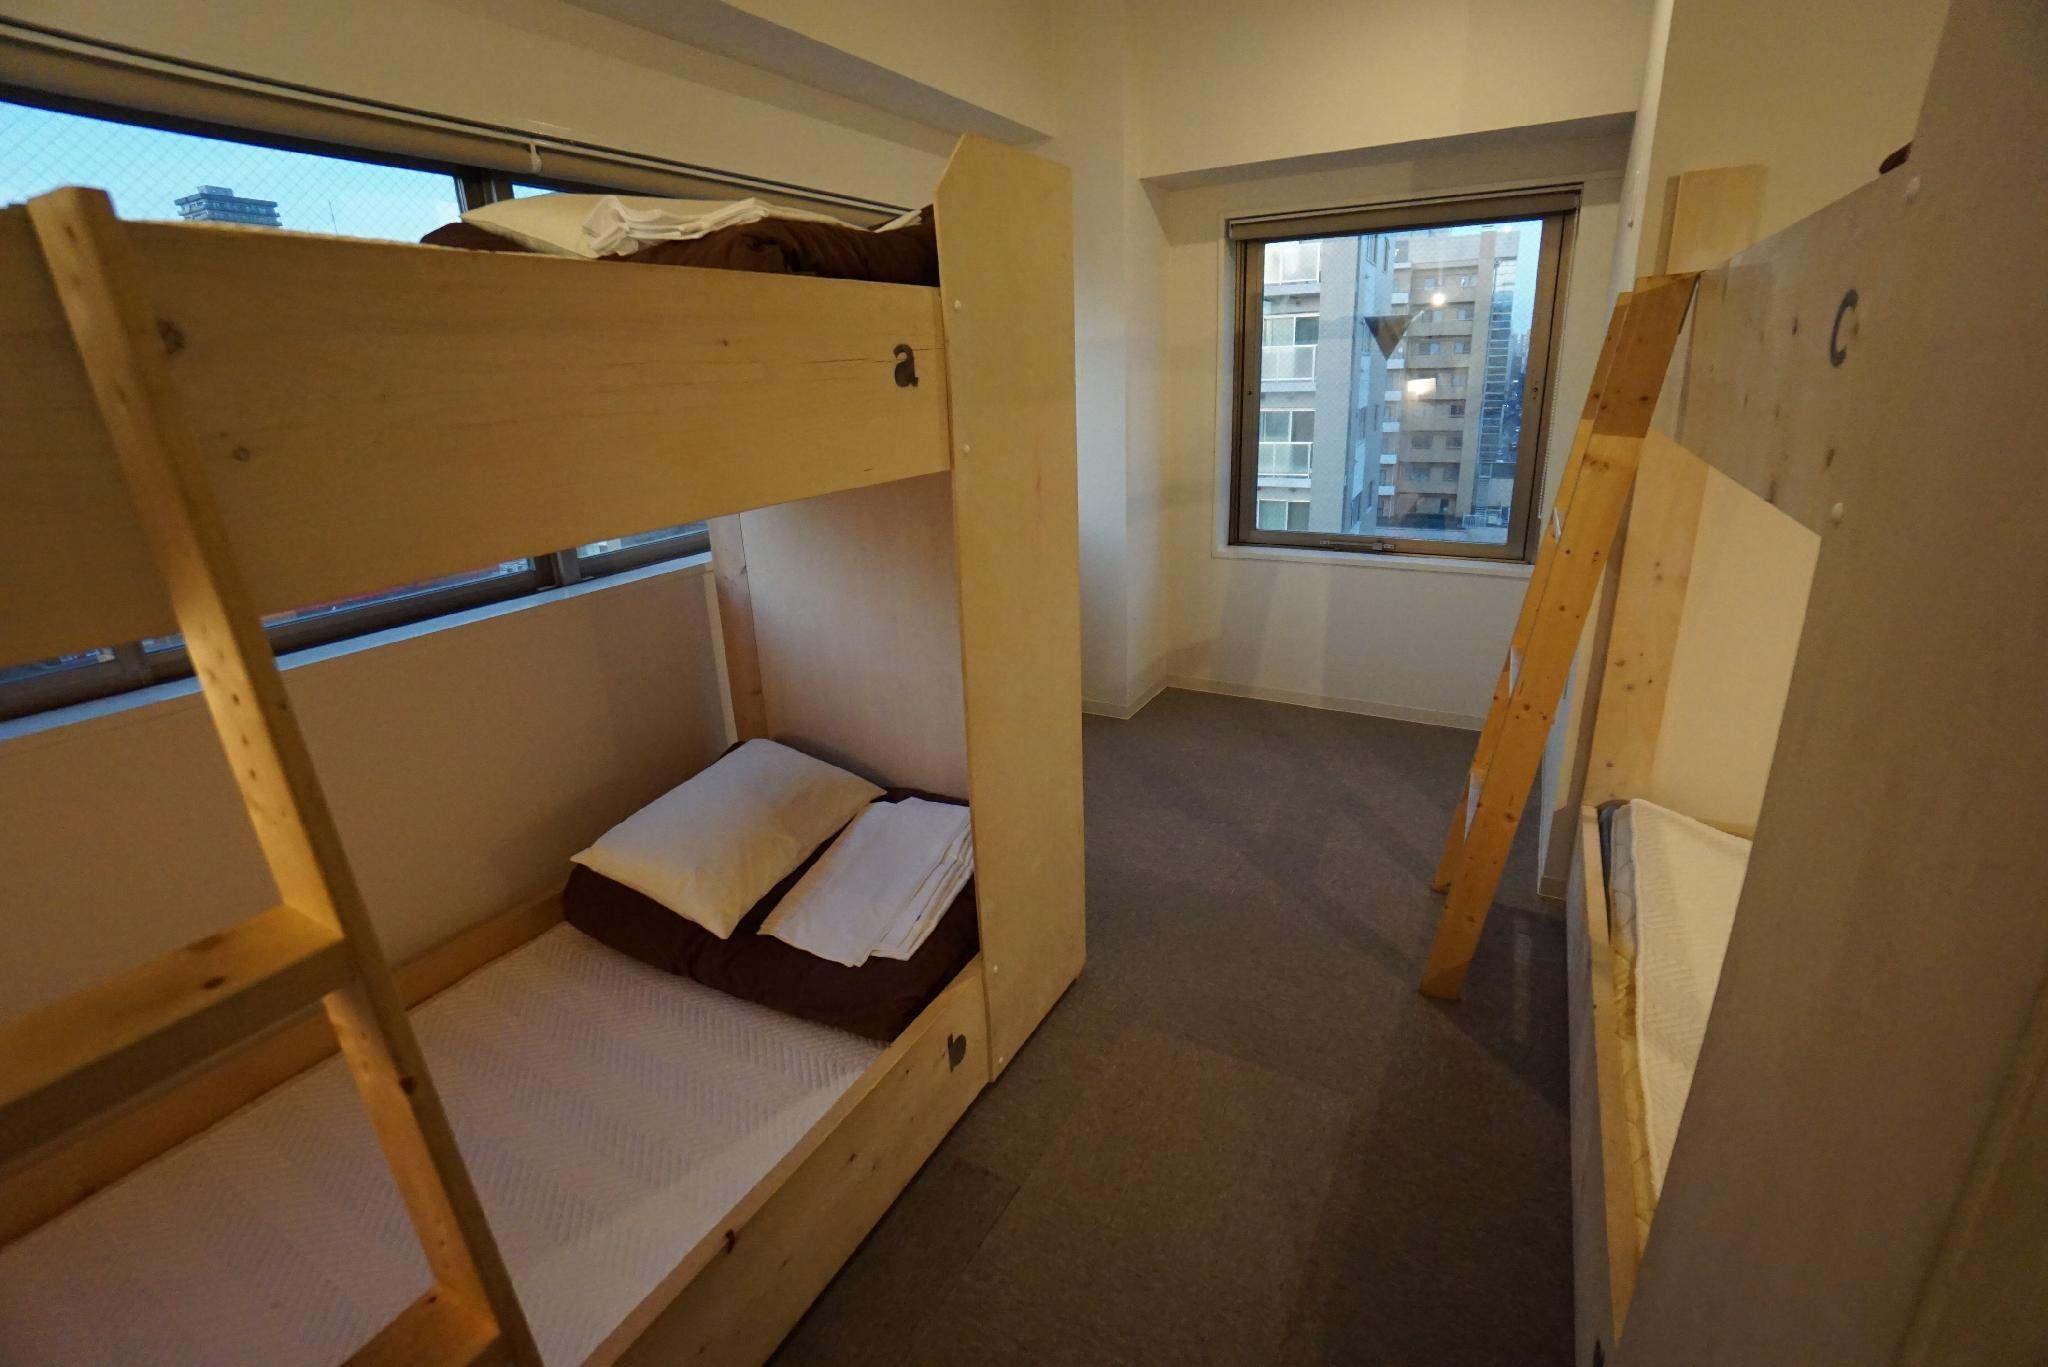 個室 二段ベッド2台(3名) (Private Room for 3 People with 2 Bunk Beds)